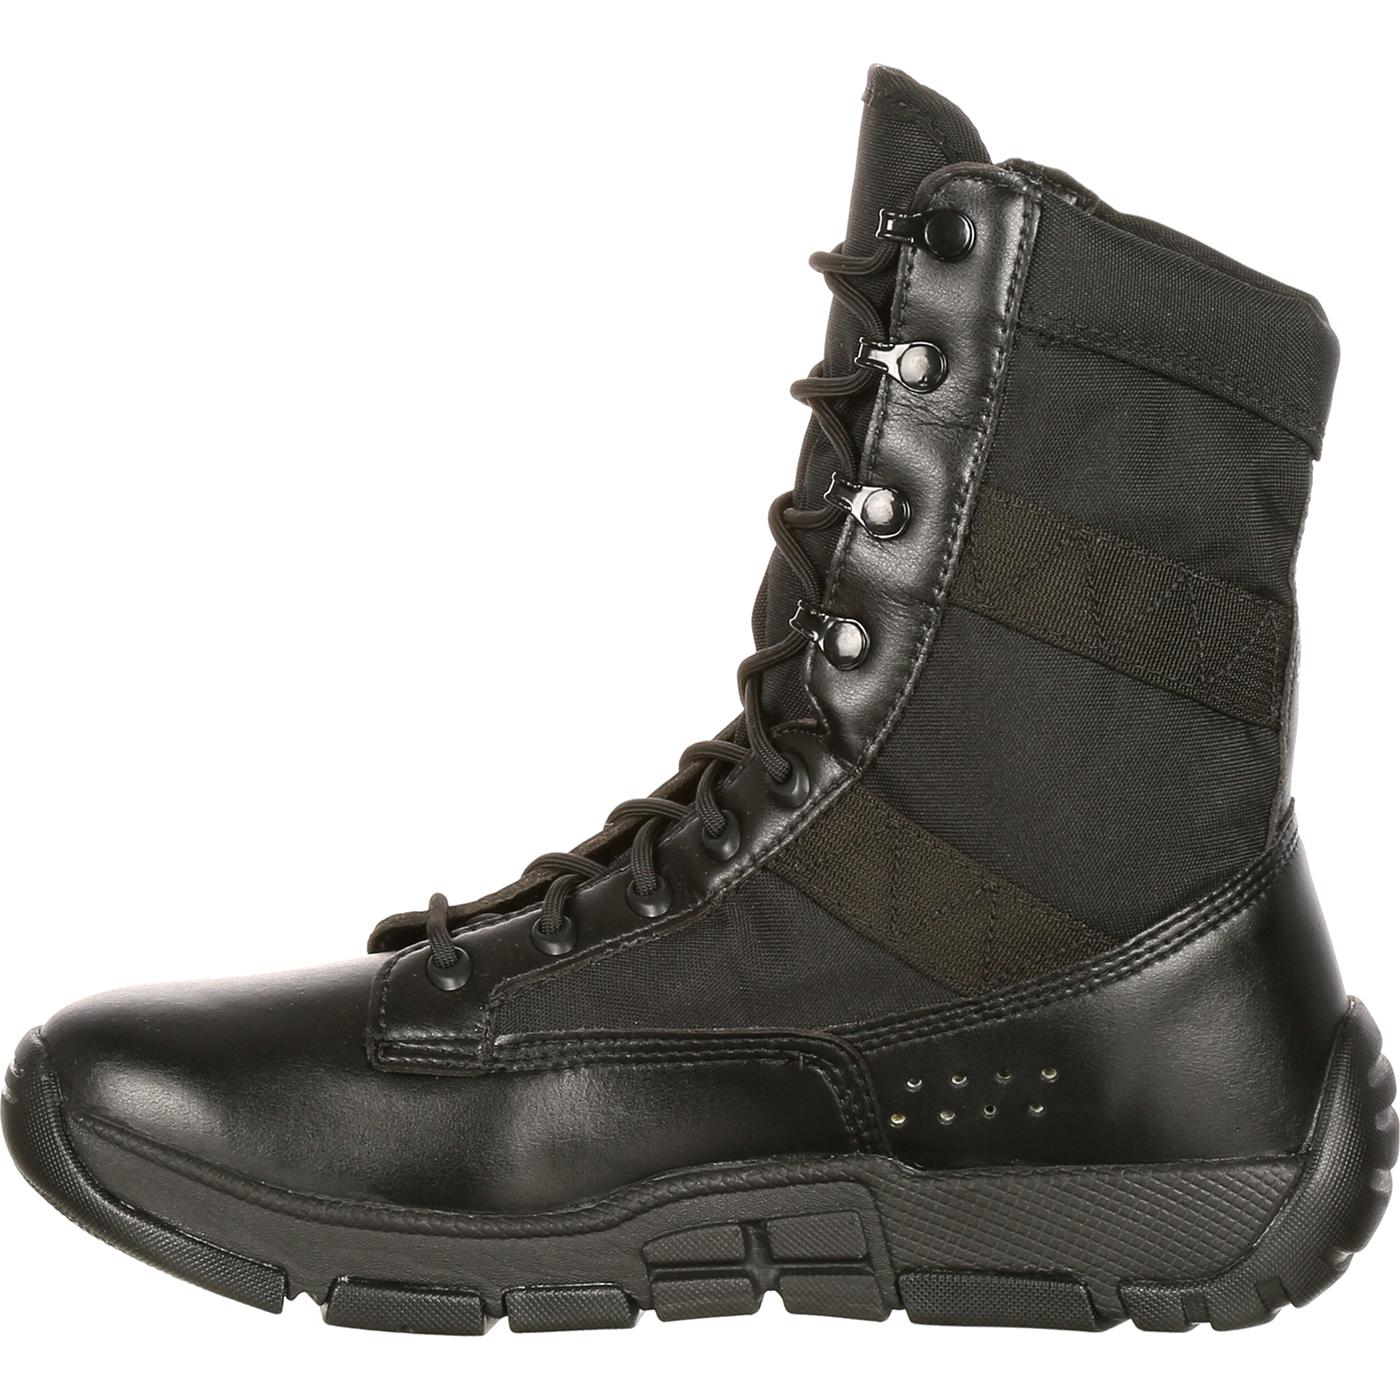 boot c images rocky c4t men s military inspired black duty boots ry008 8191